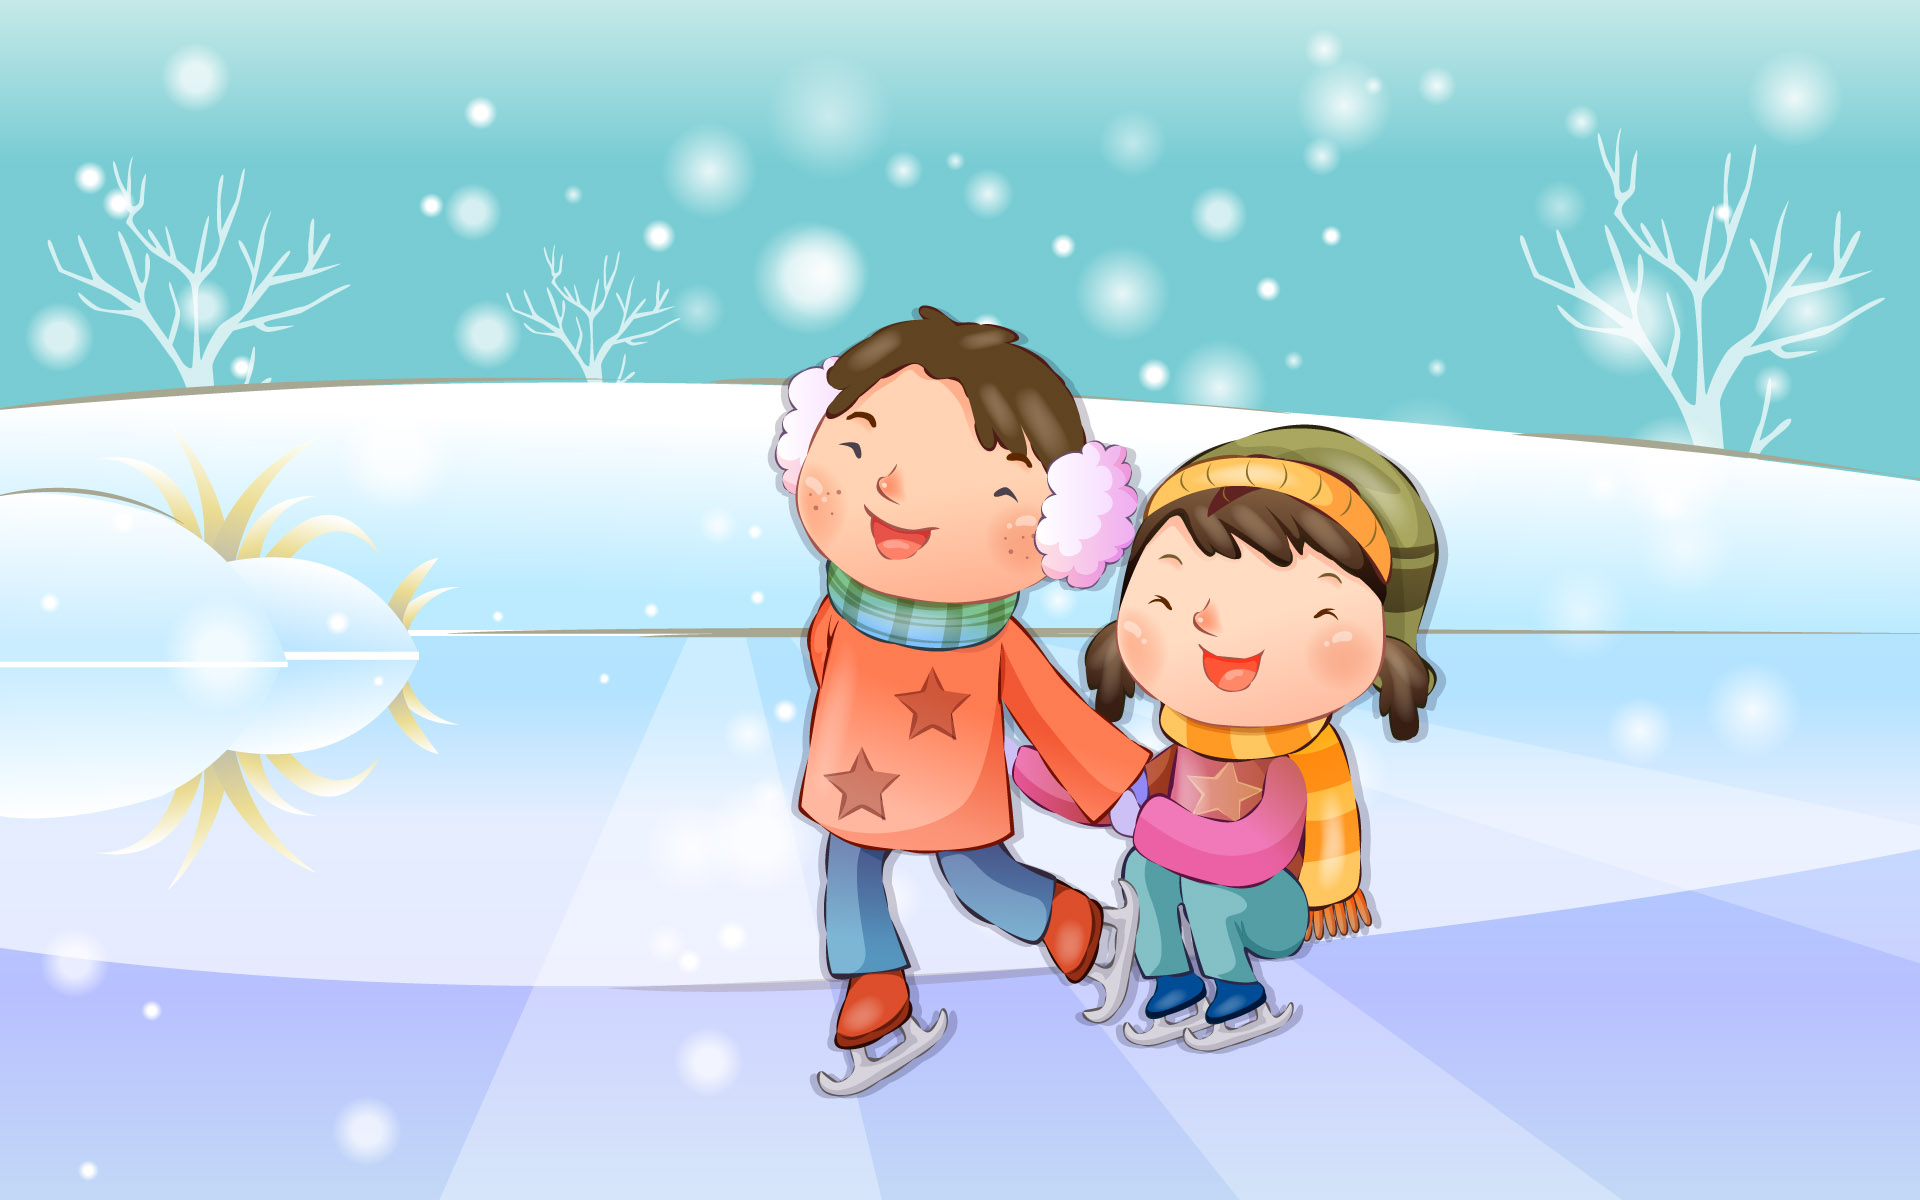 Happy childhood winter chapter illustrations 11299